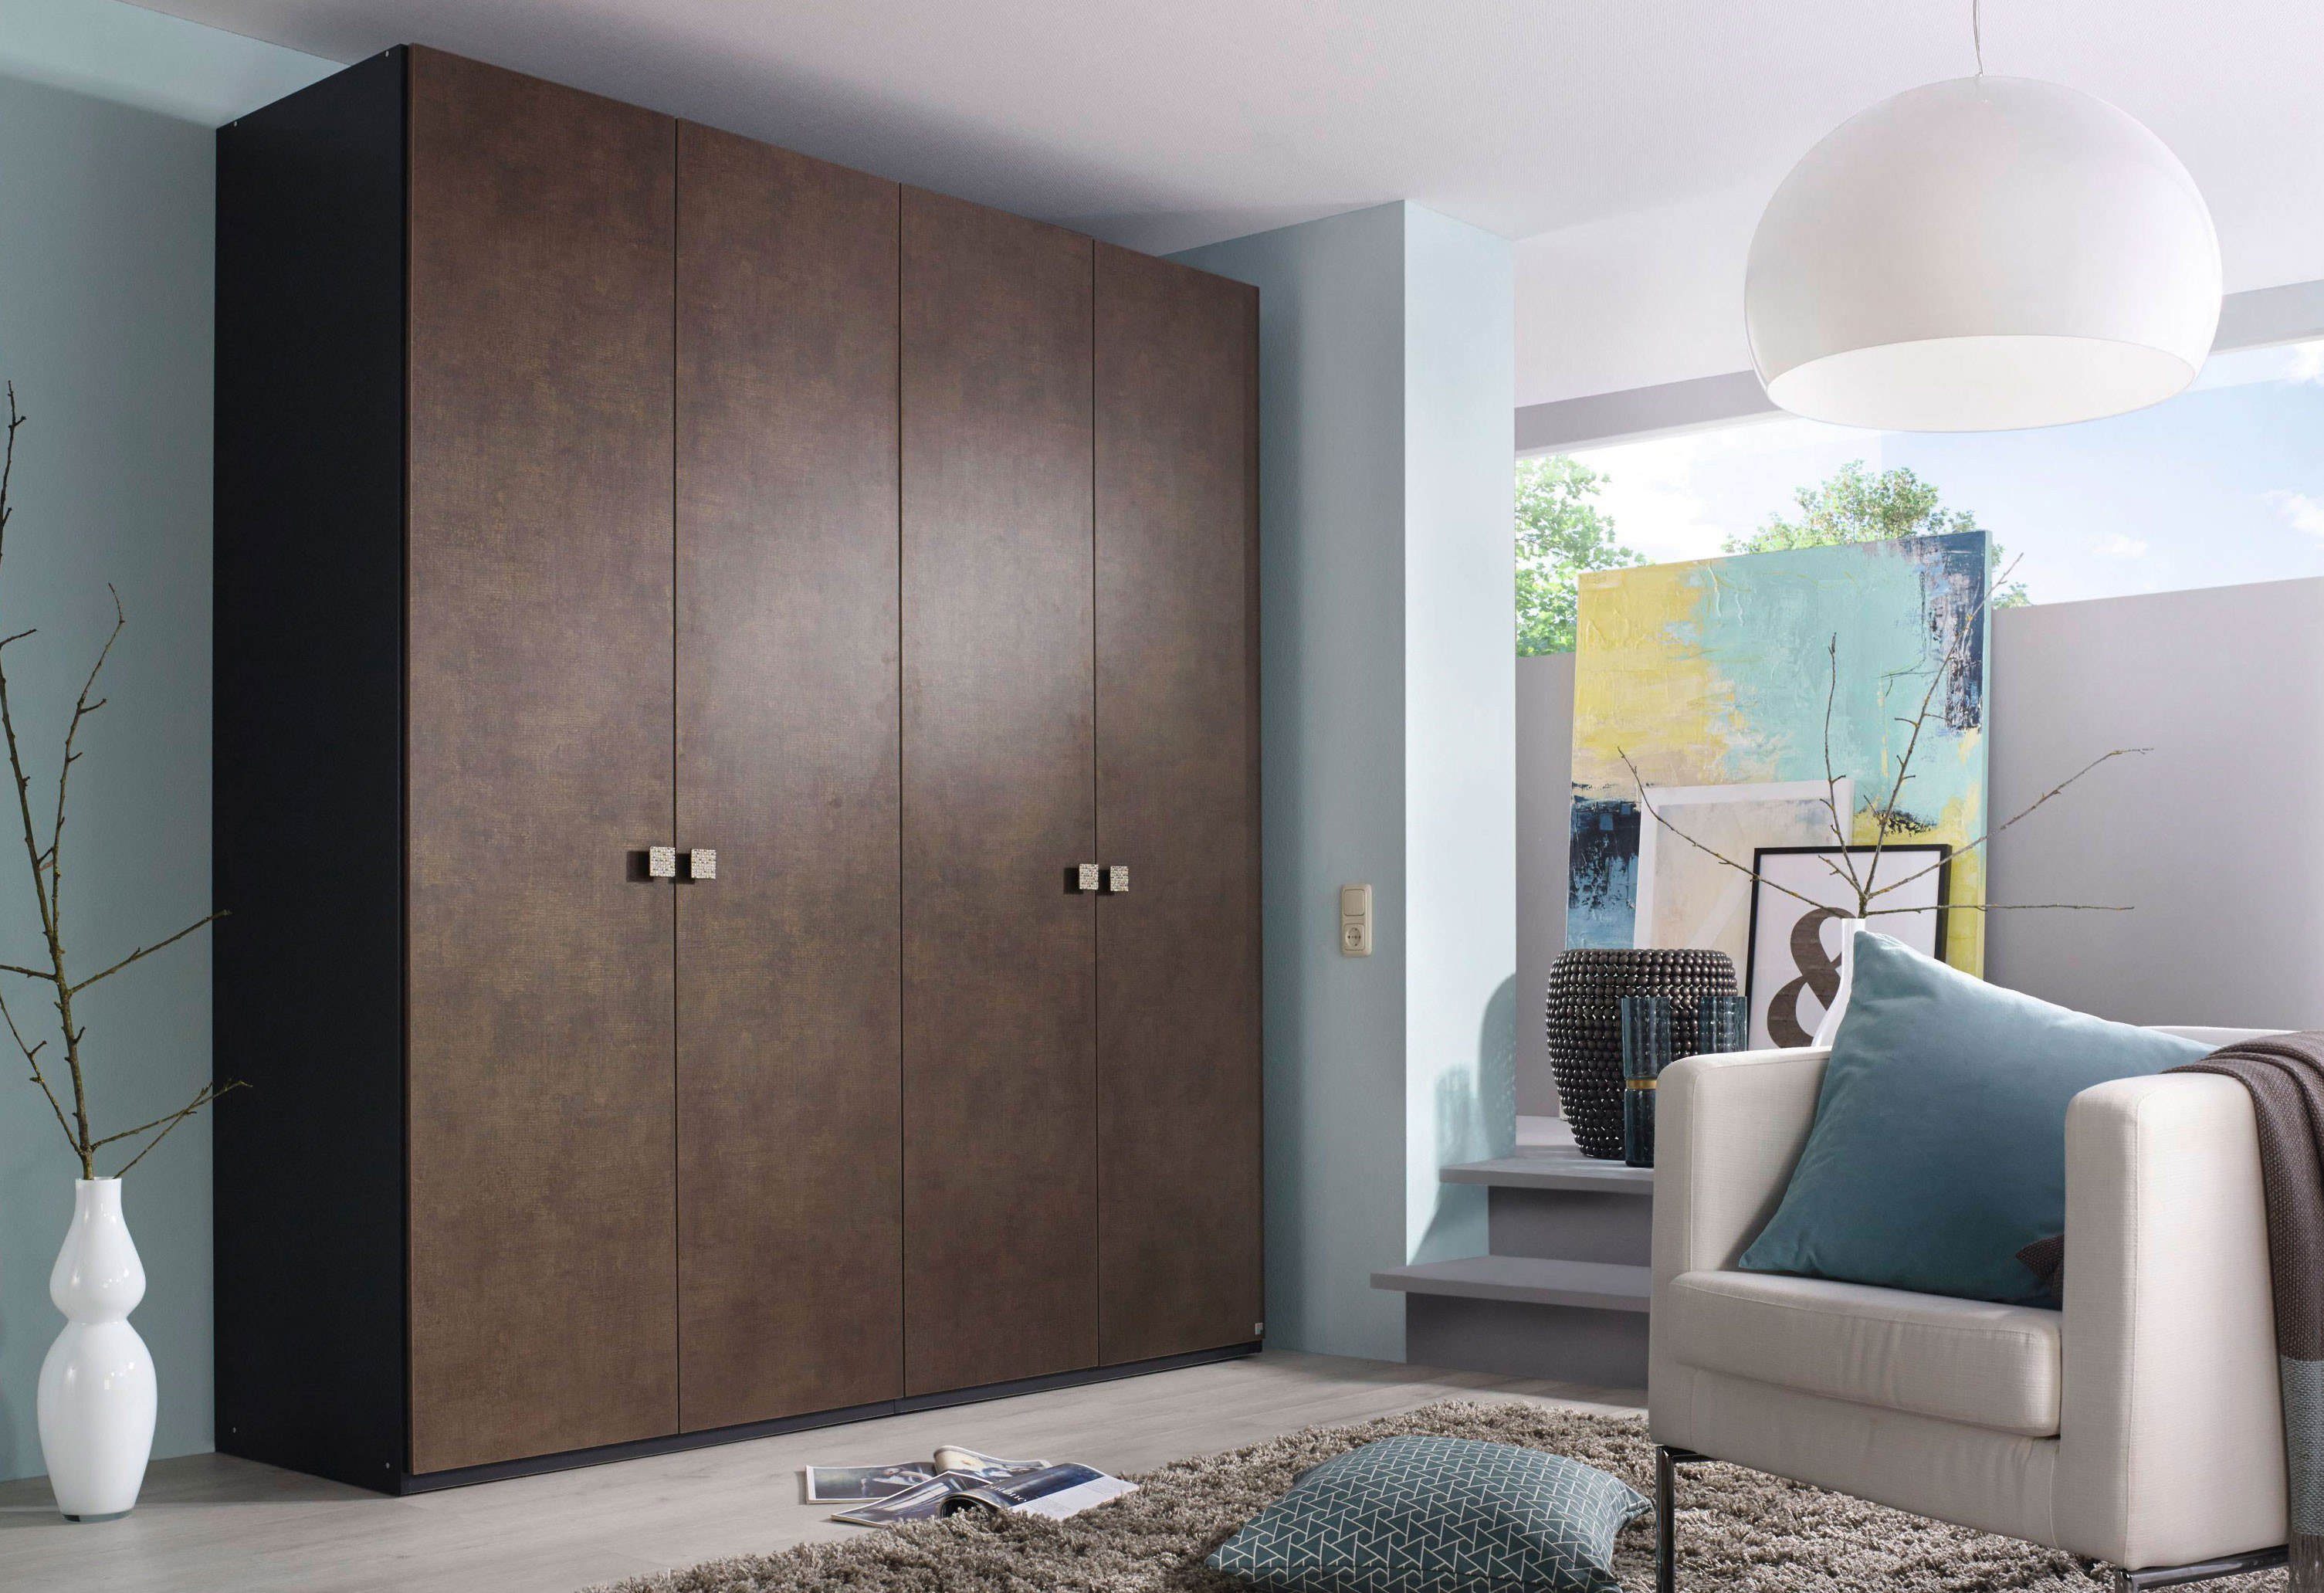 bekannte schrank vintage look nf71 kyushucon. Black Bedroom Furniture Sets. Home Design Ideas